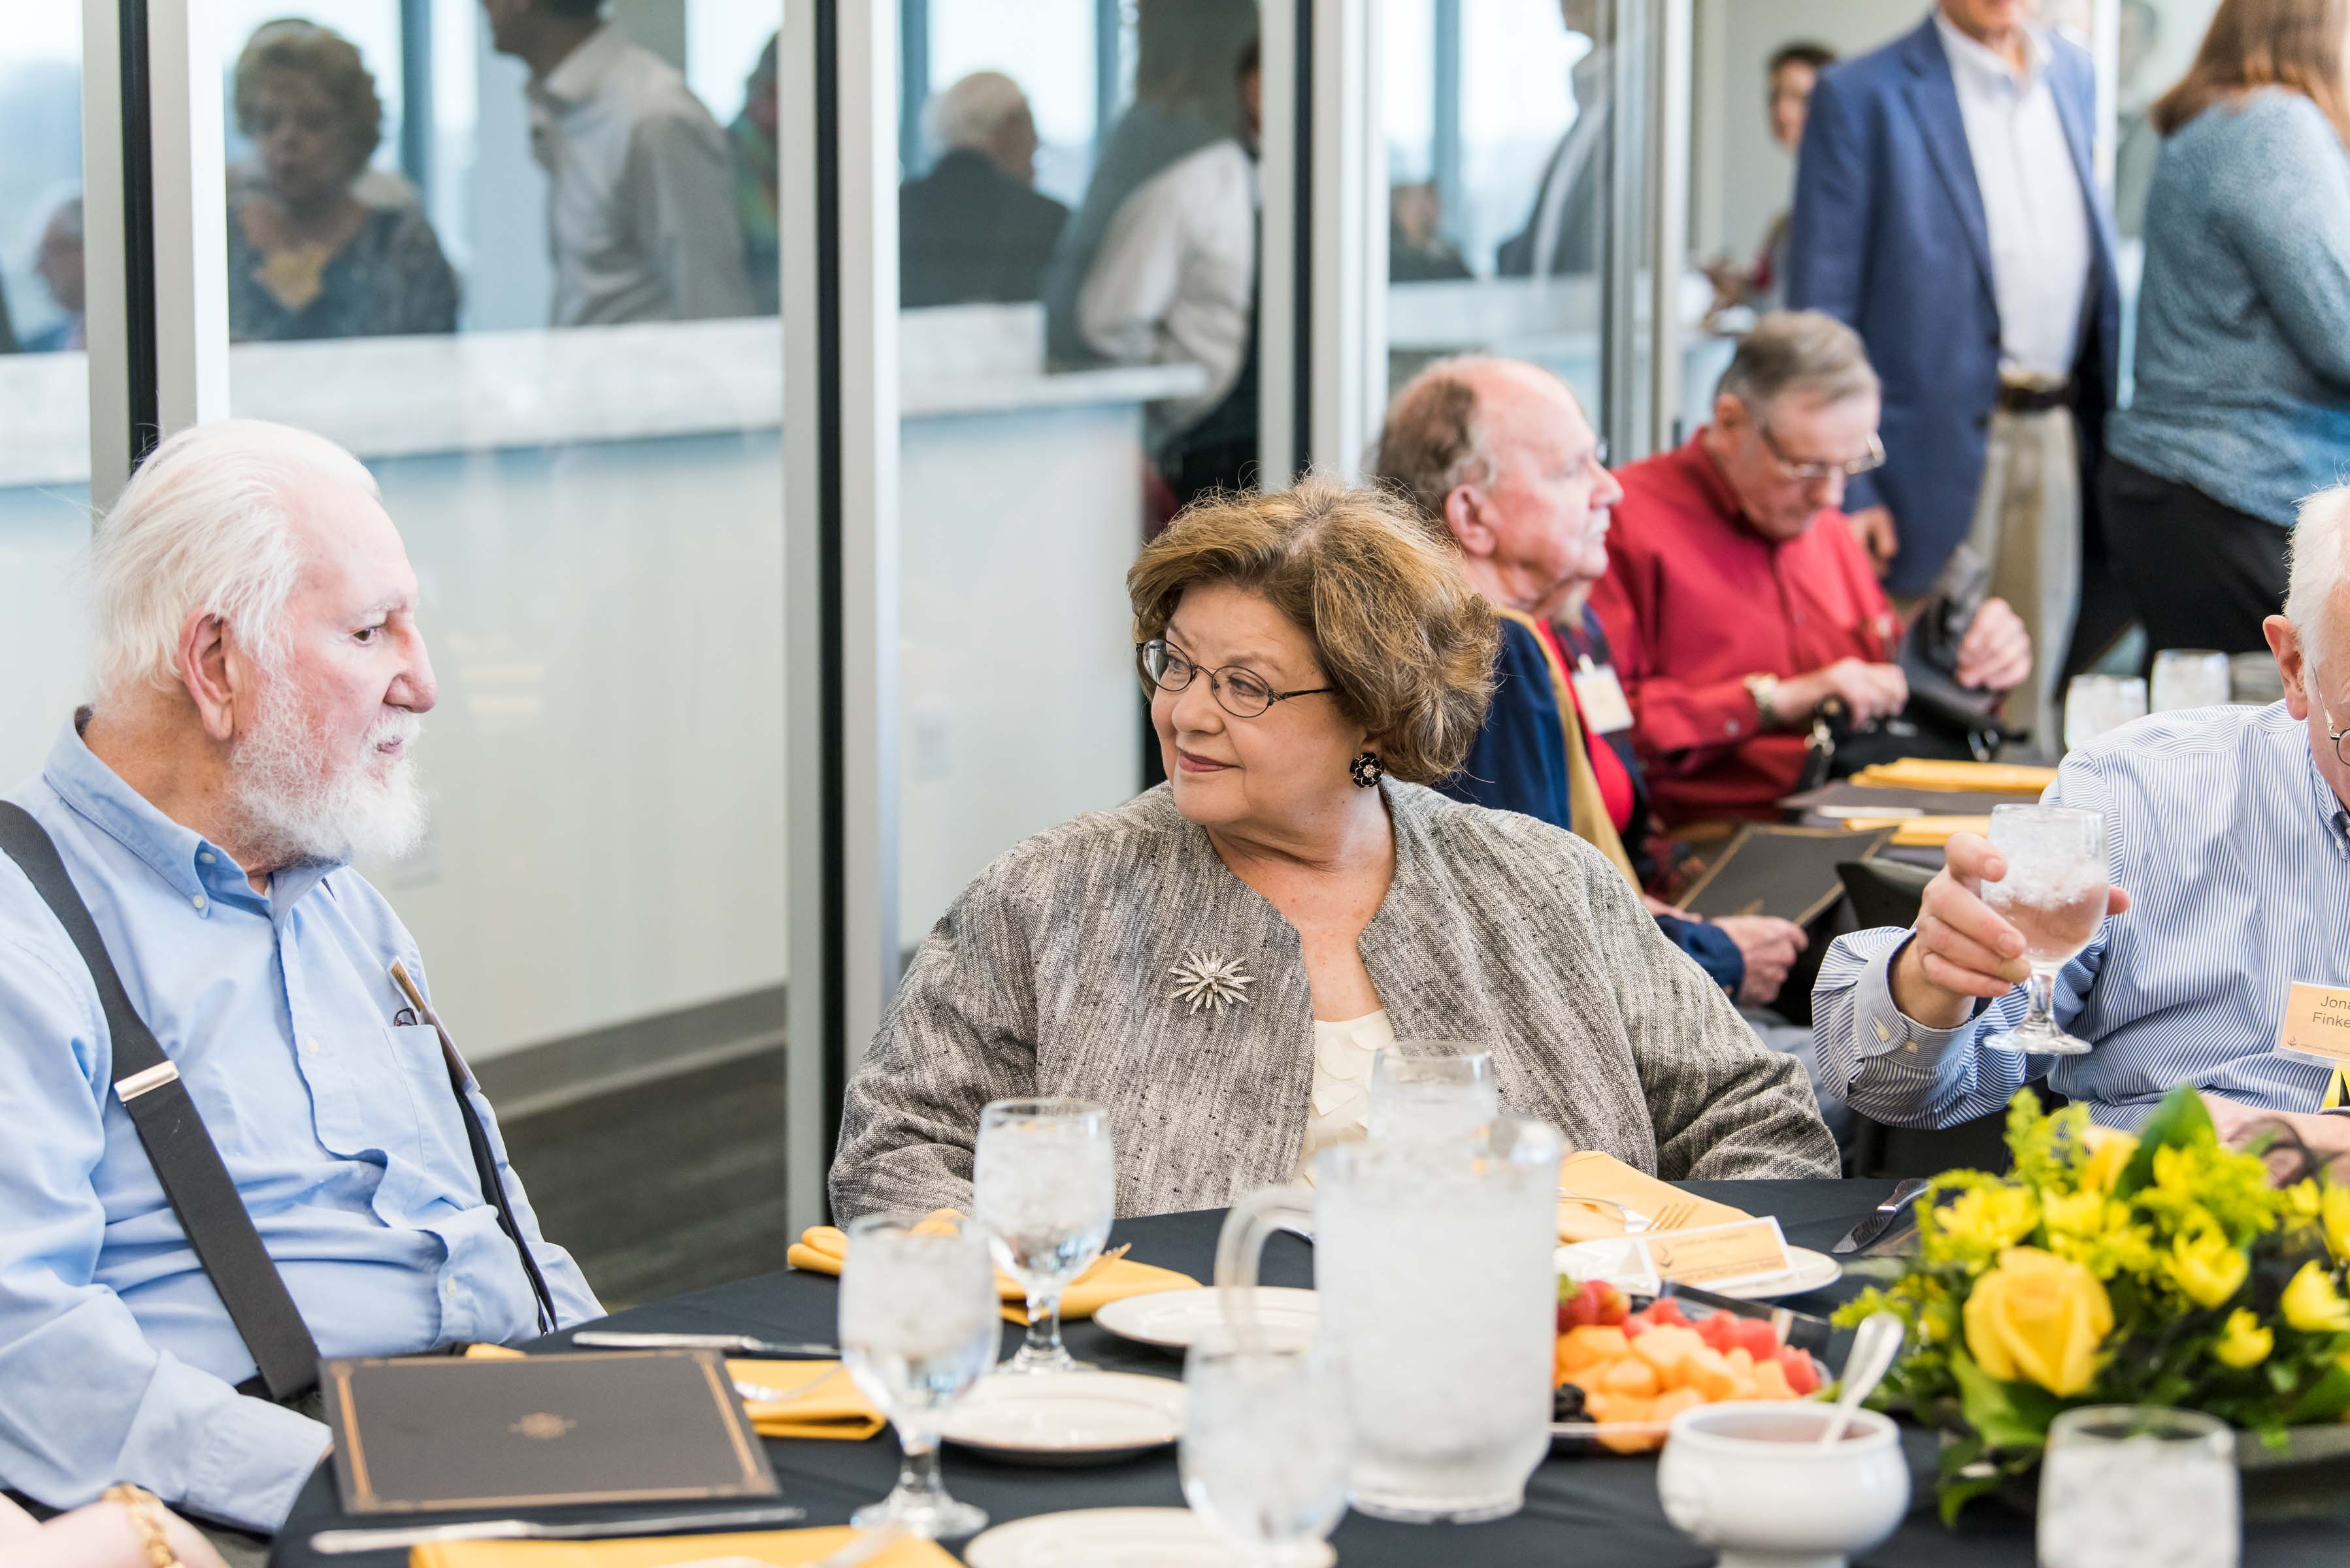 People sit at table with spread at Wisdom Institute lunch